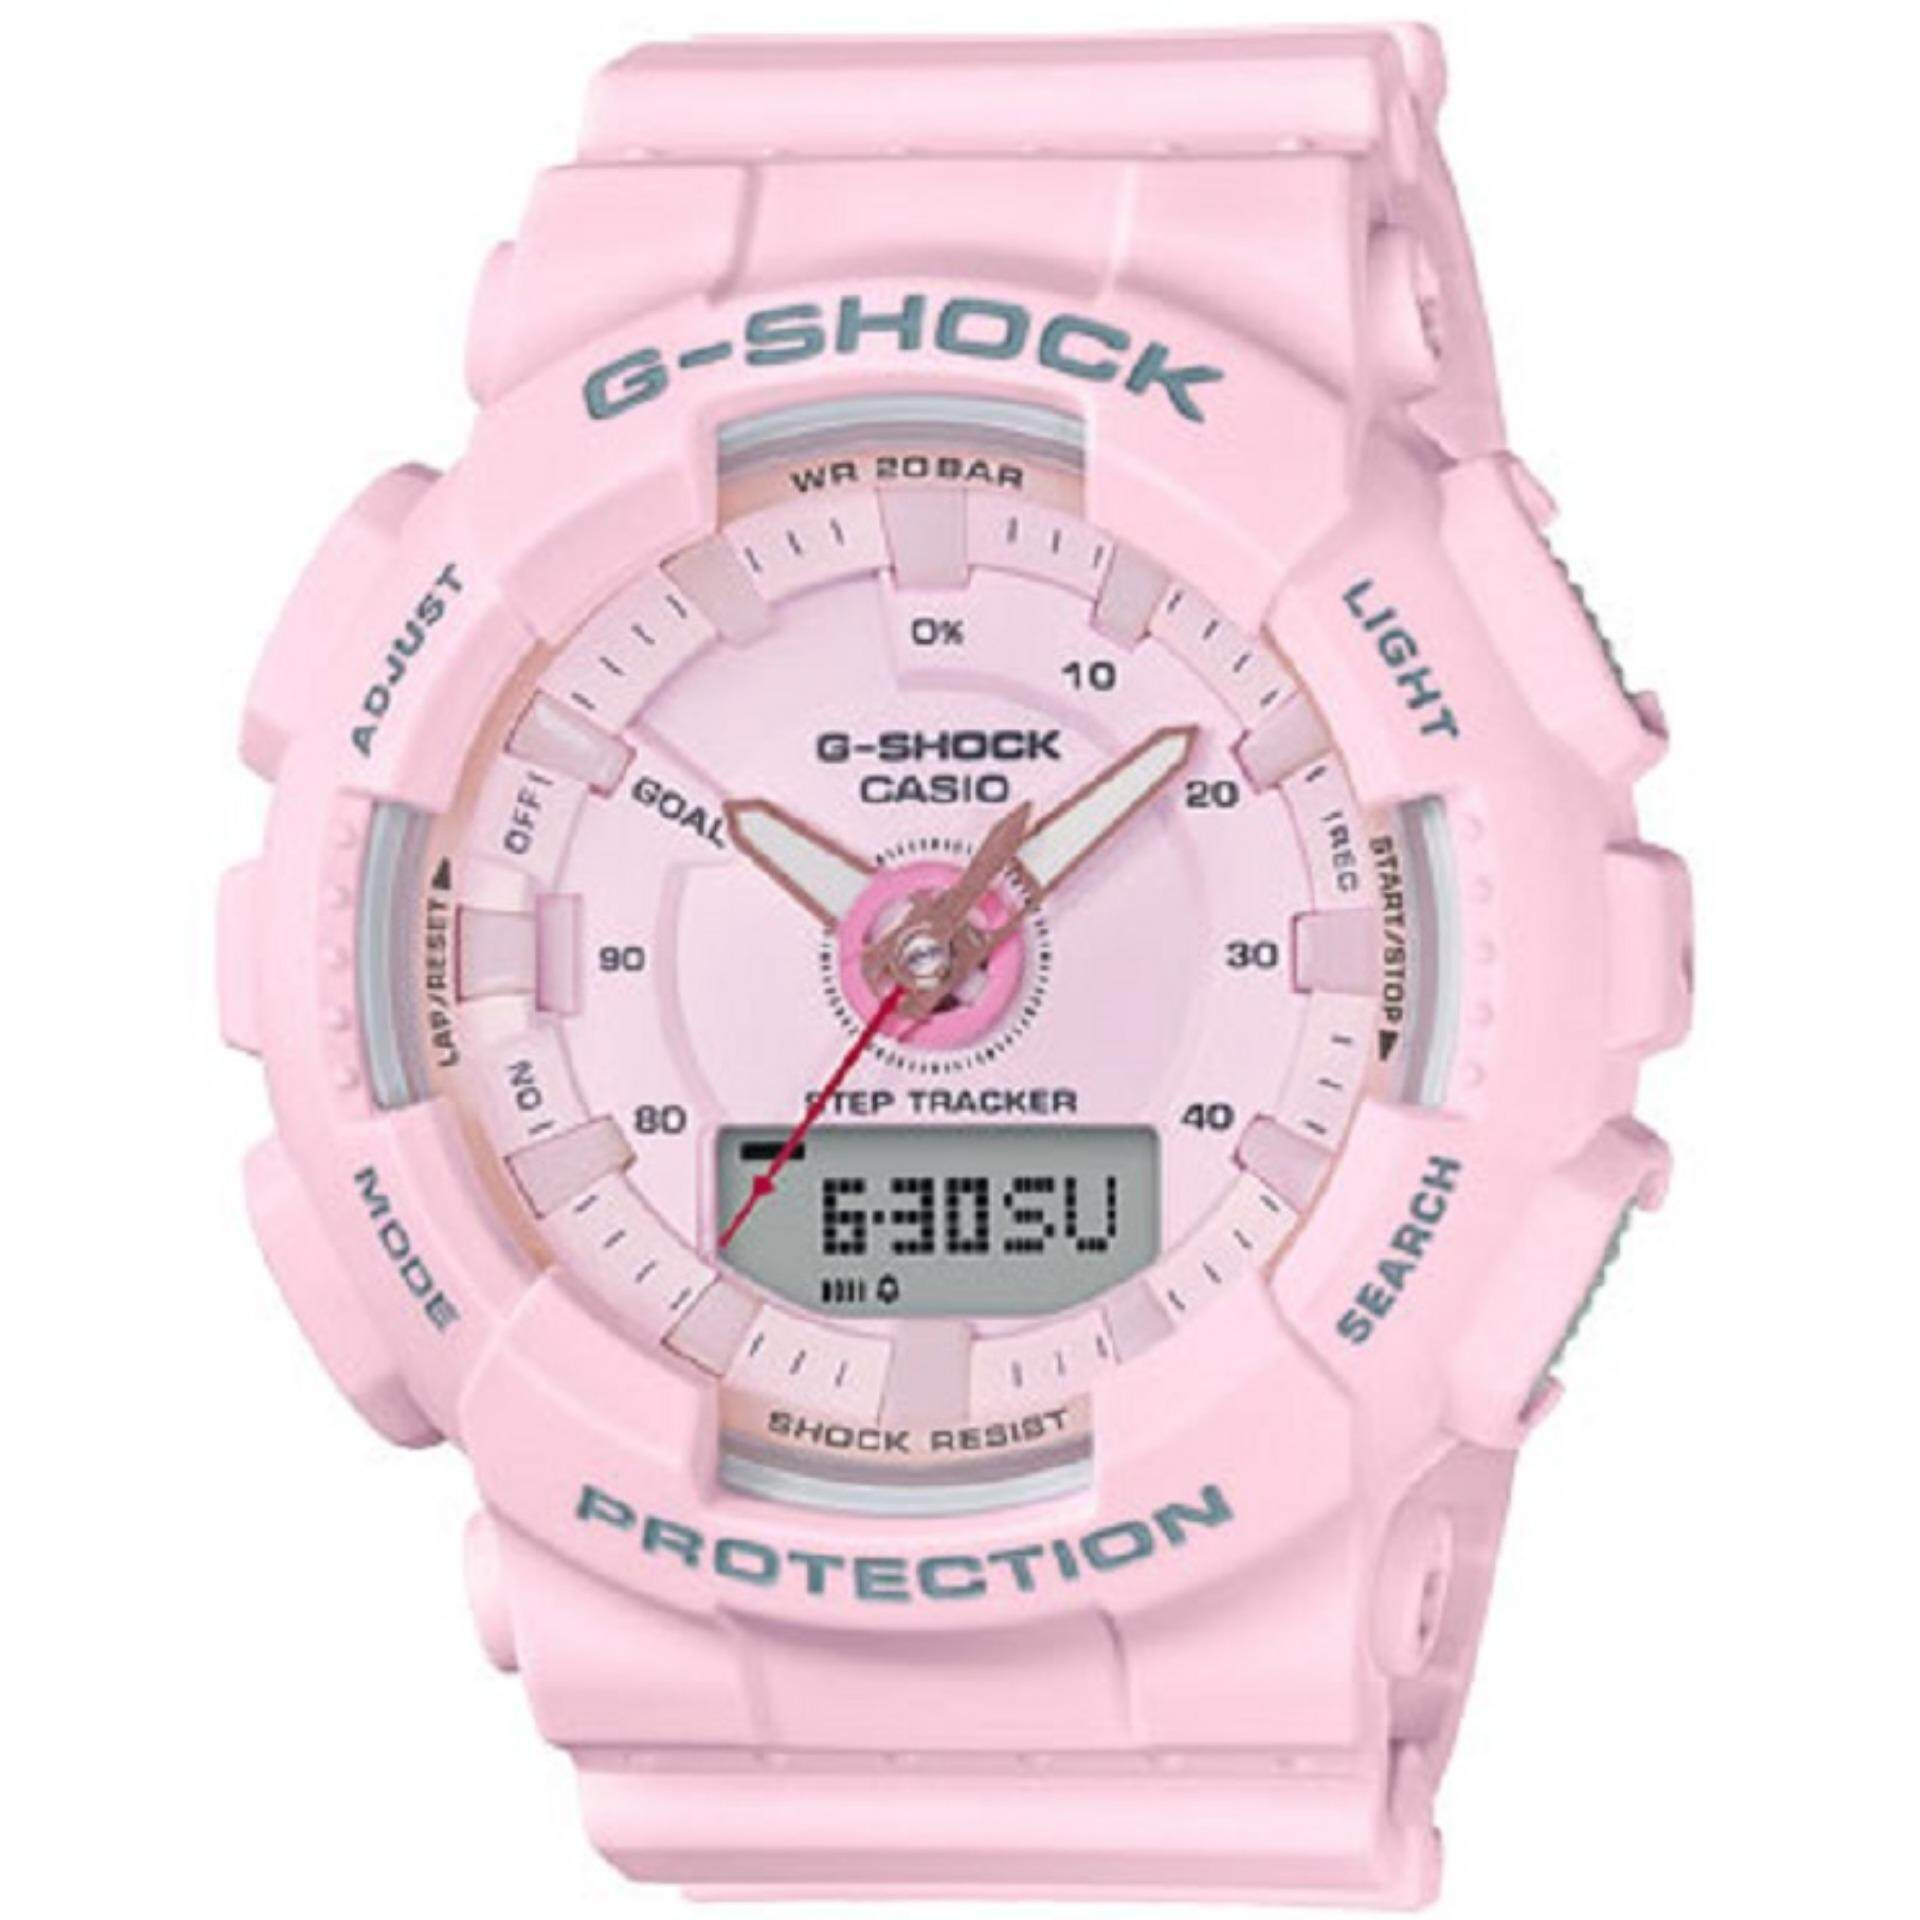 d0796691bbb01 Casio G-Shock Mini Pink Resin Strap Watch GMA-S130-4A